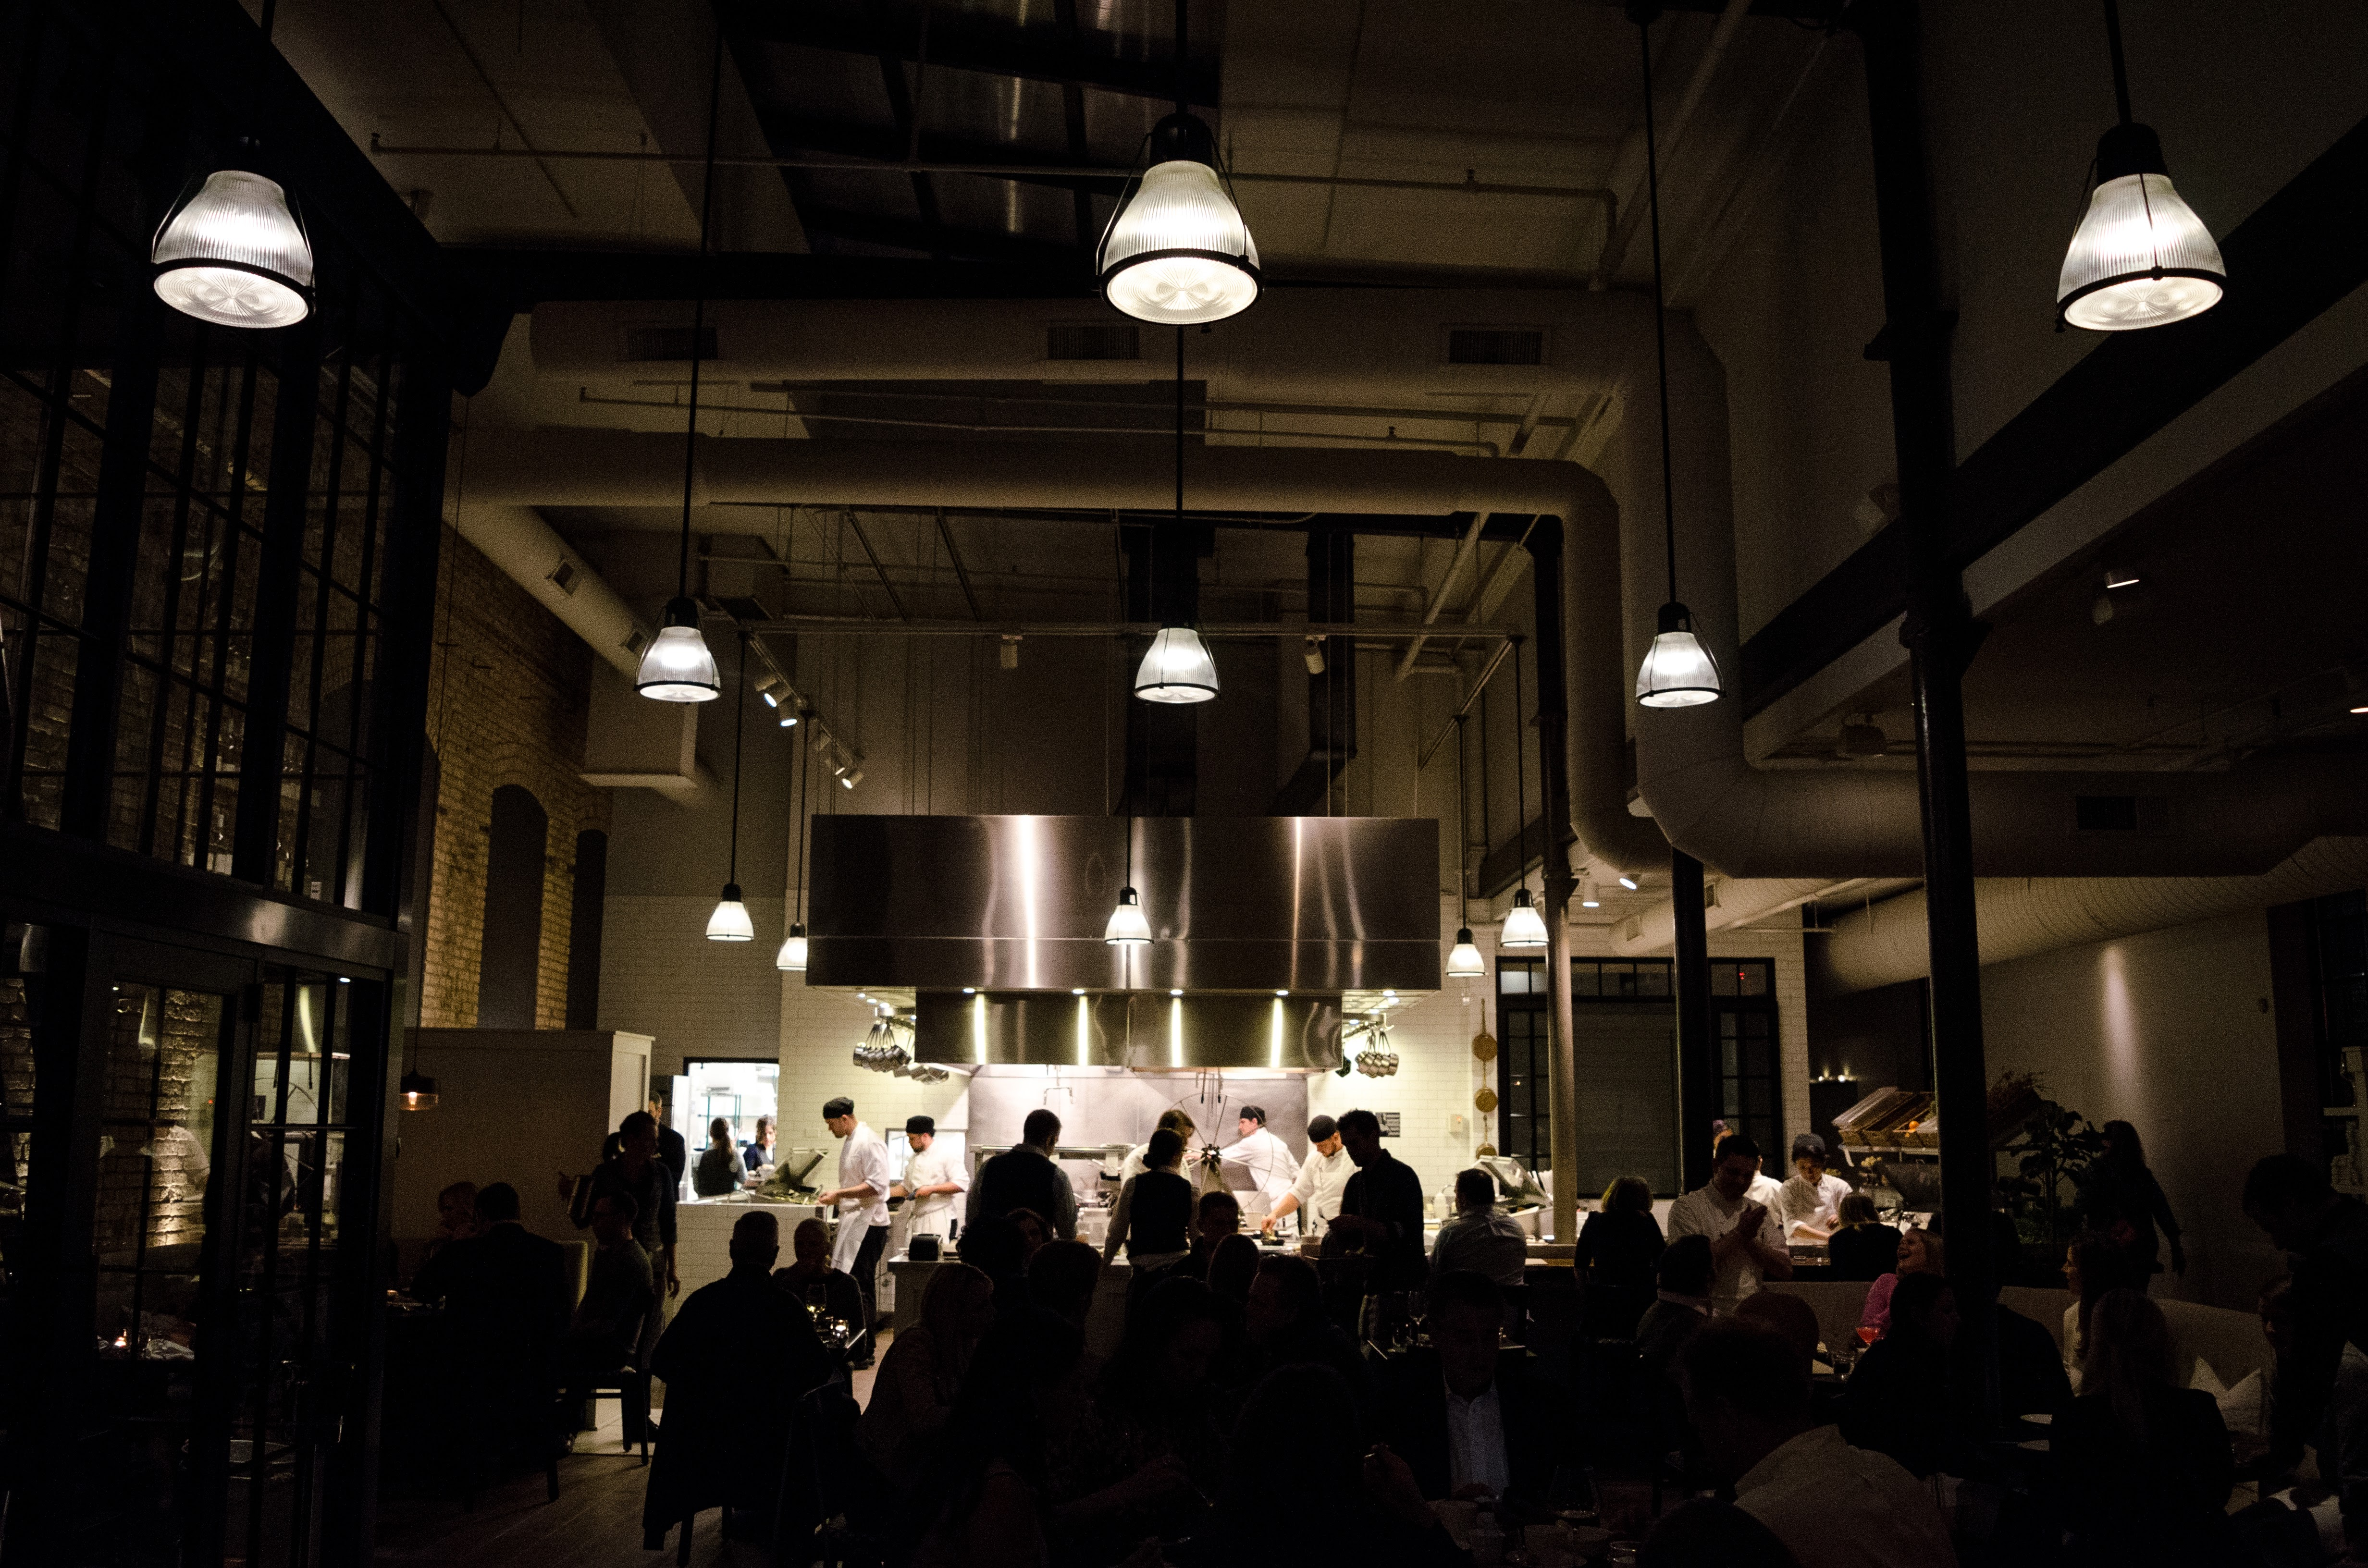 Eater Scene: Spoon and Stable Tacos at 10:30 pm Saturday